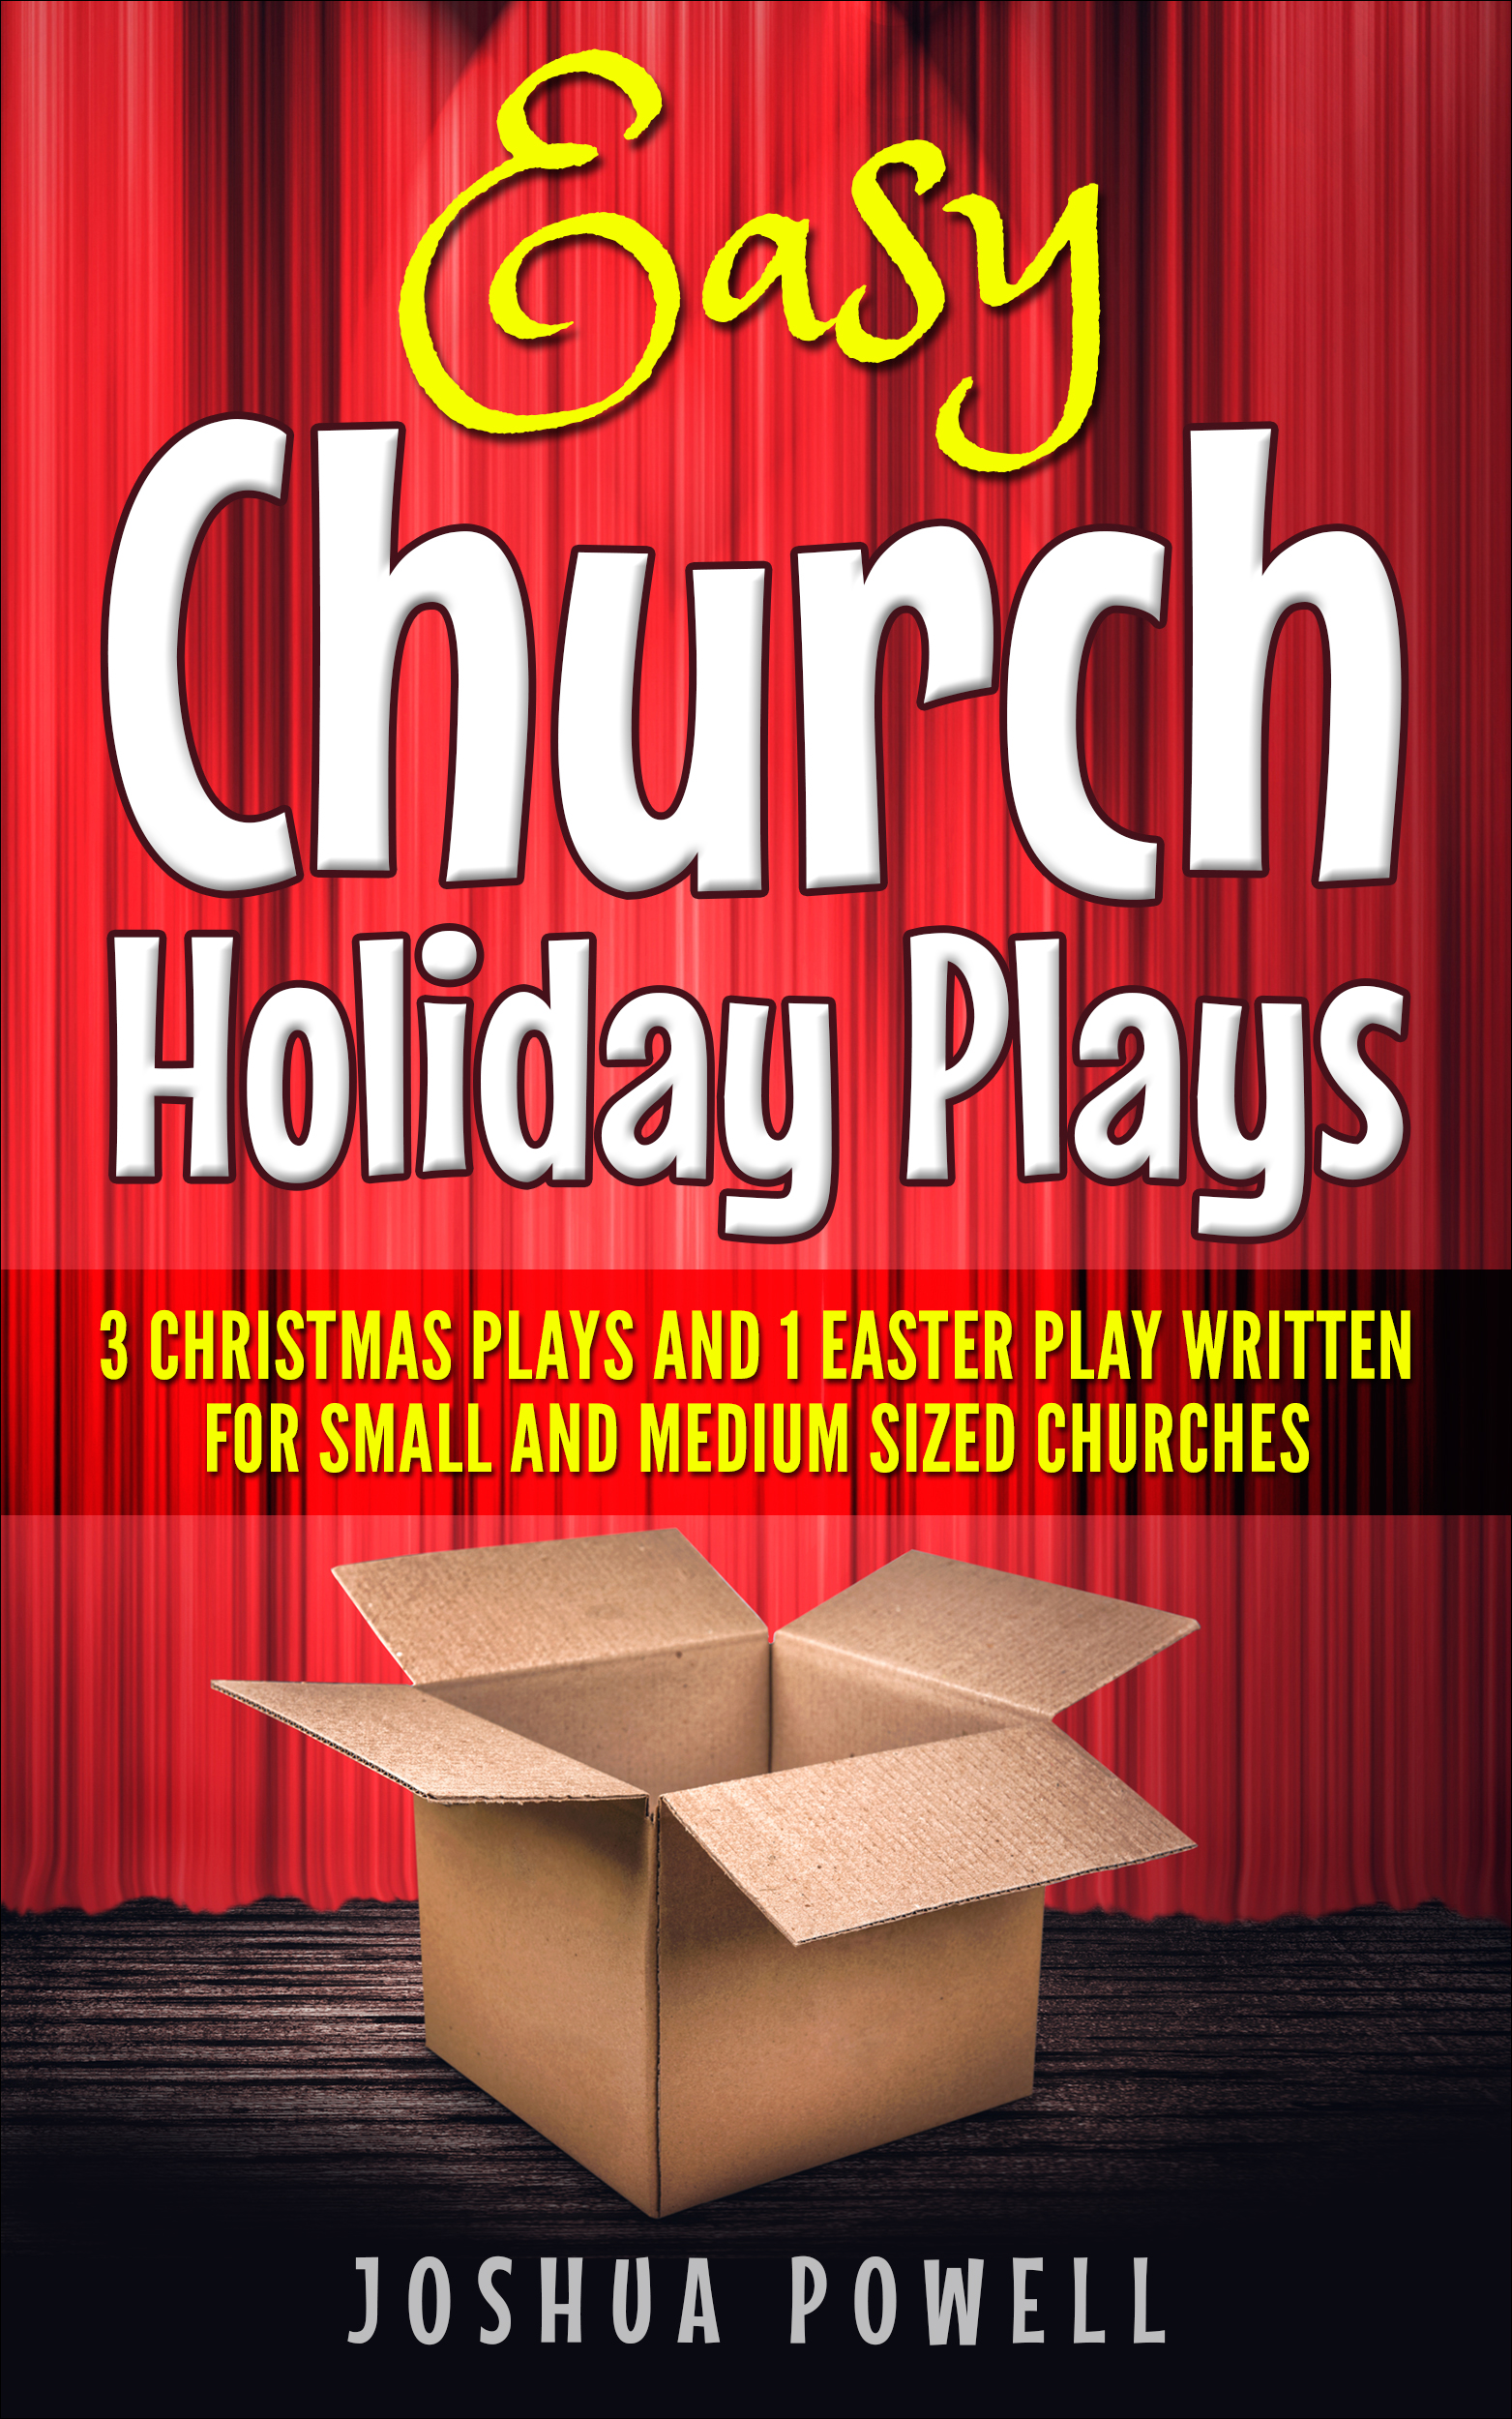 easy church holiday plays - Christmas Plays For Small Churches